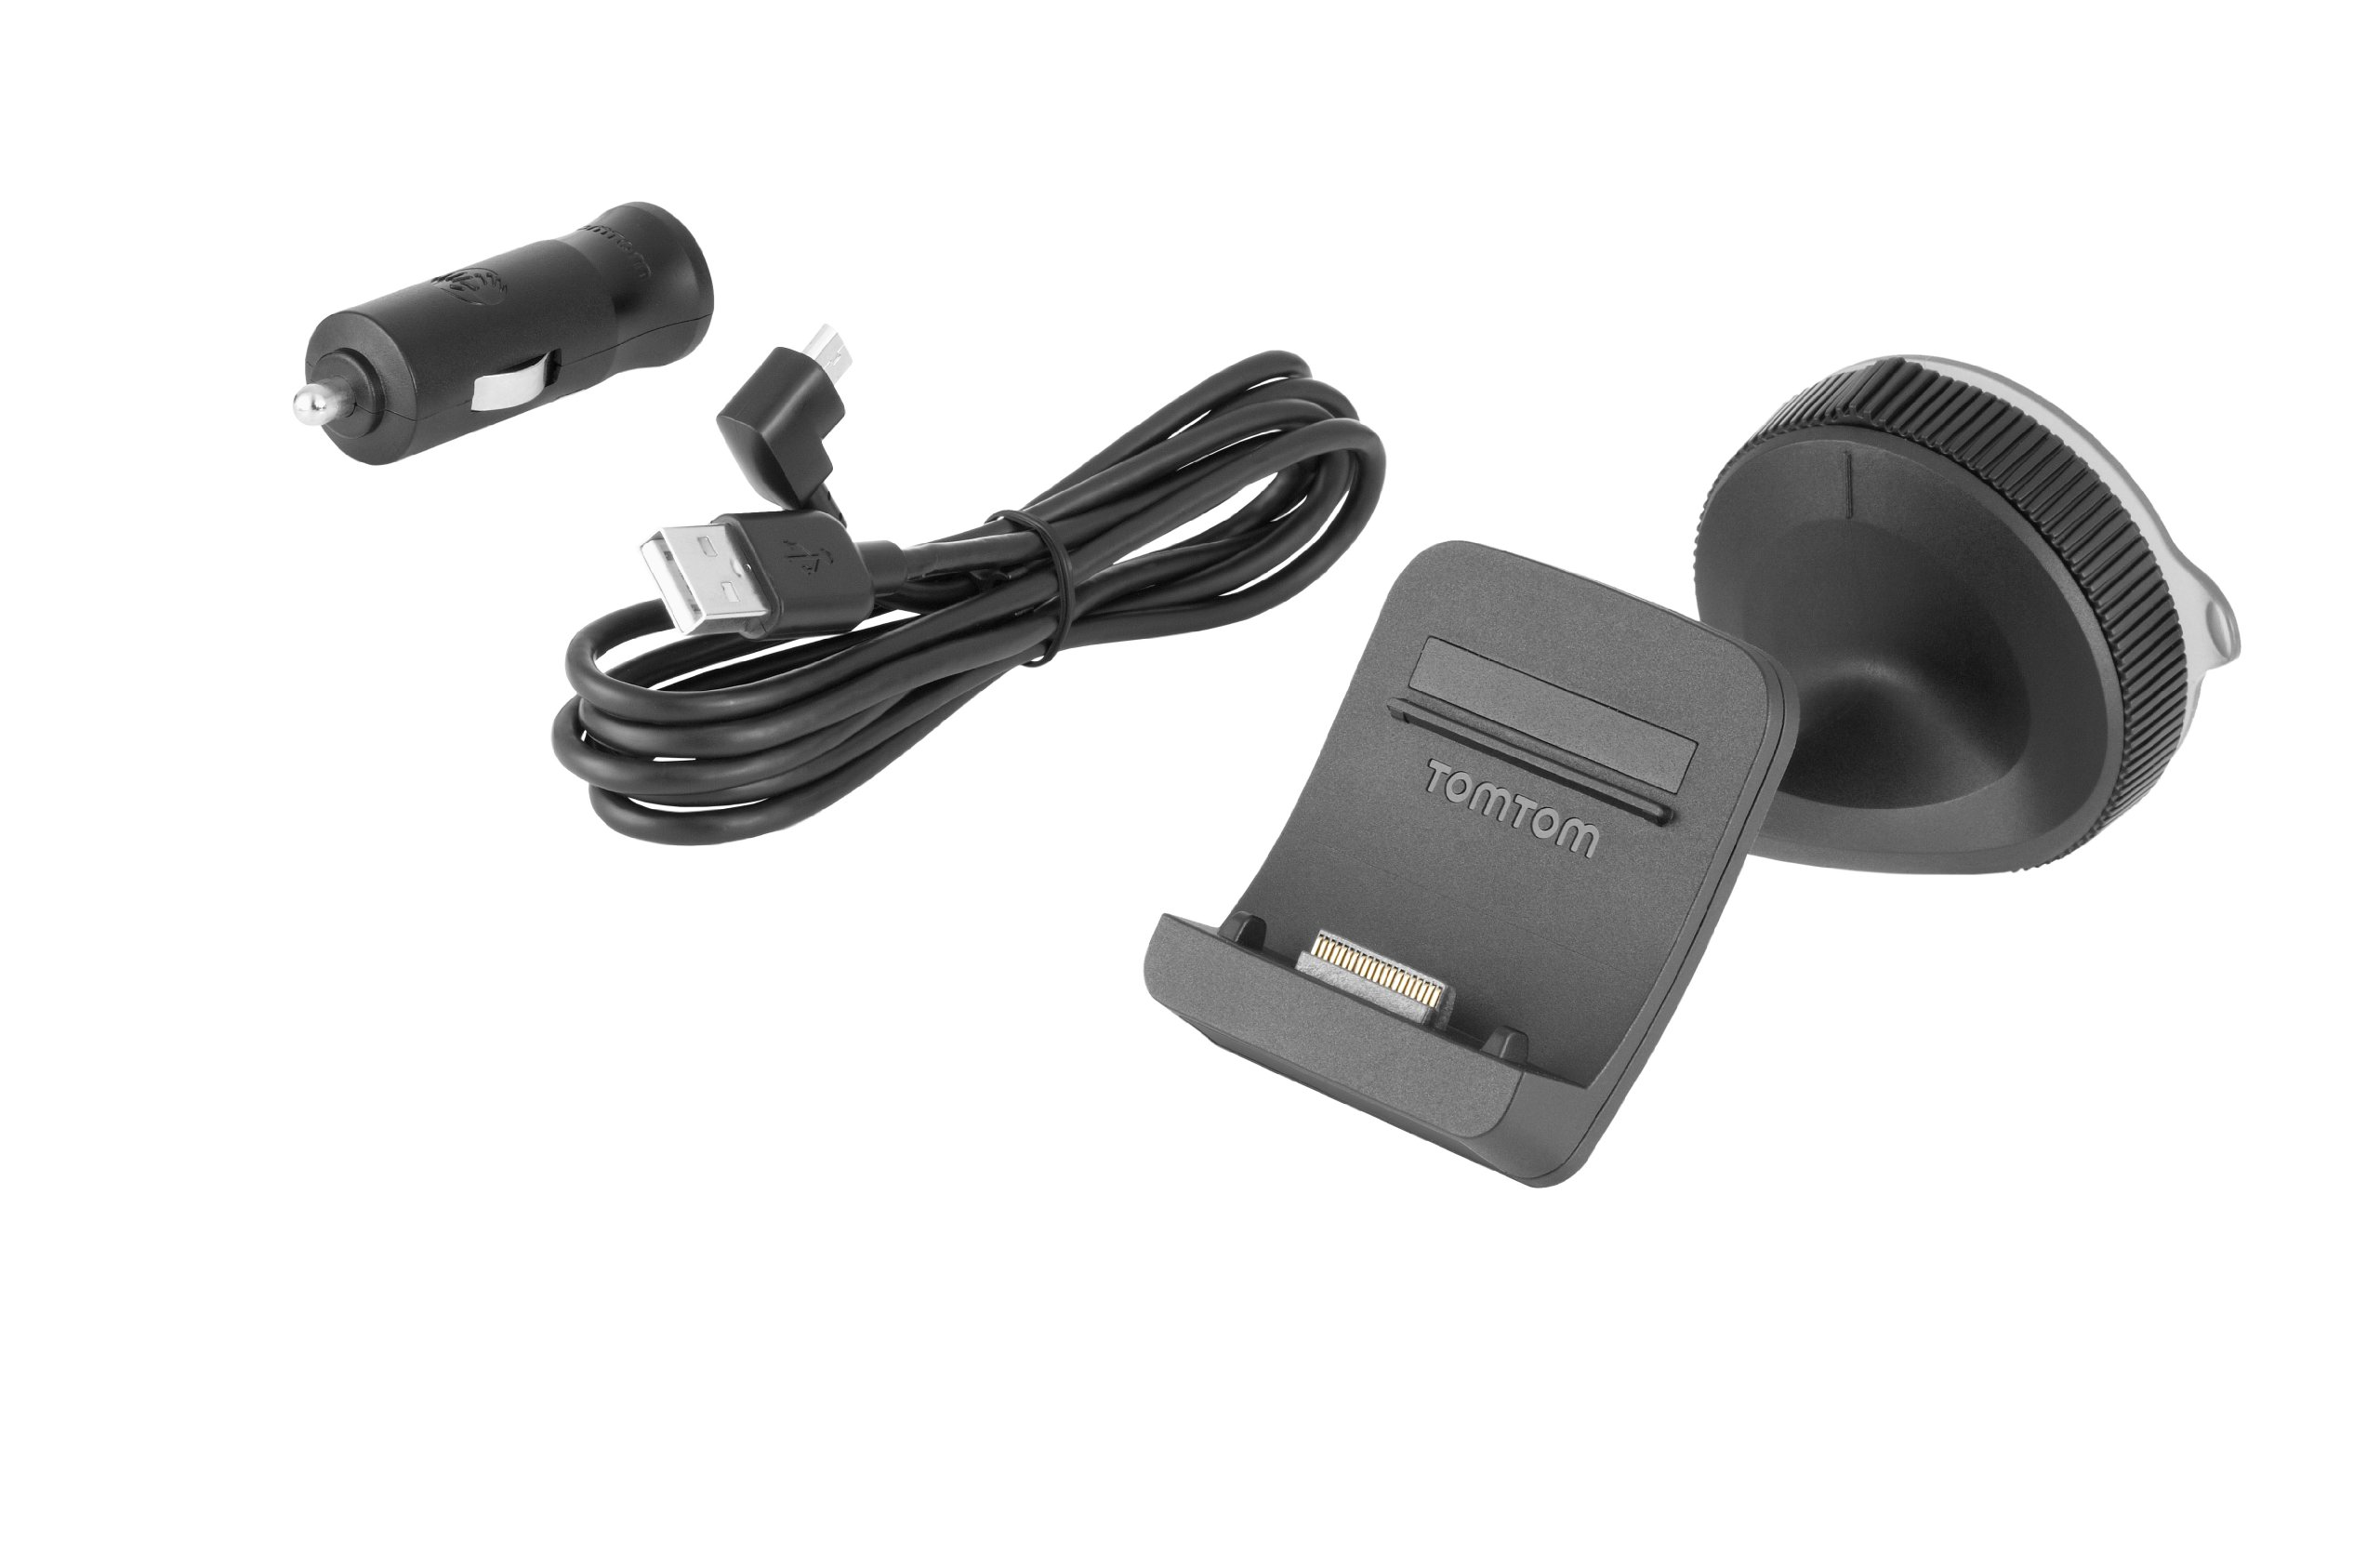 TomTom Click and Go Mount Car Charger and USB Cable product image